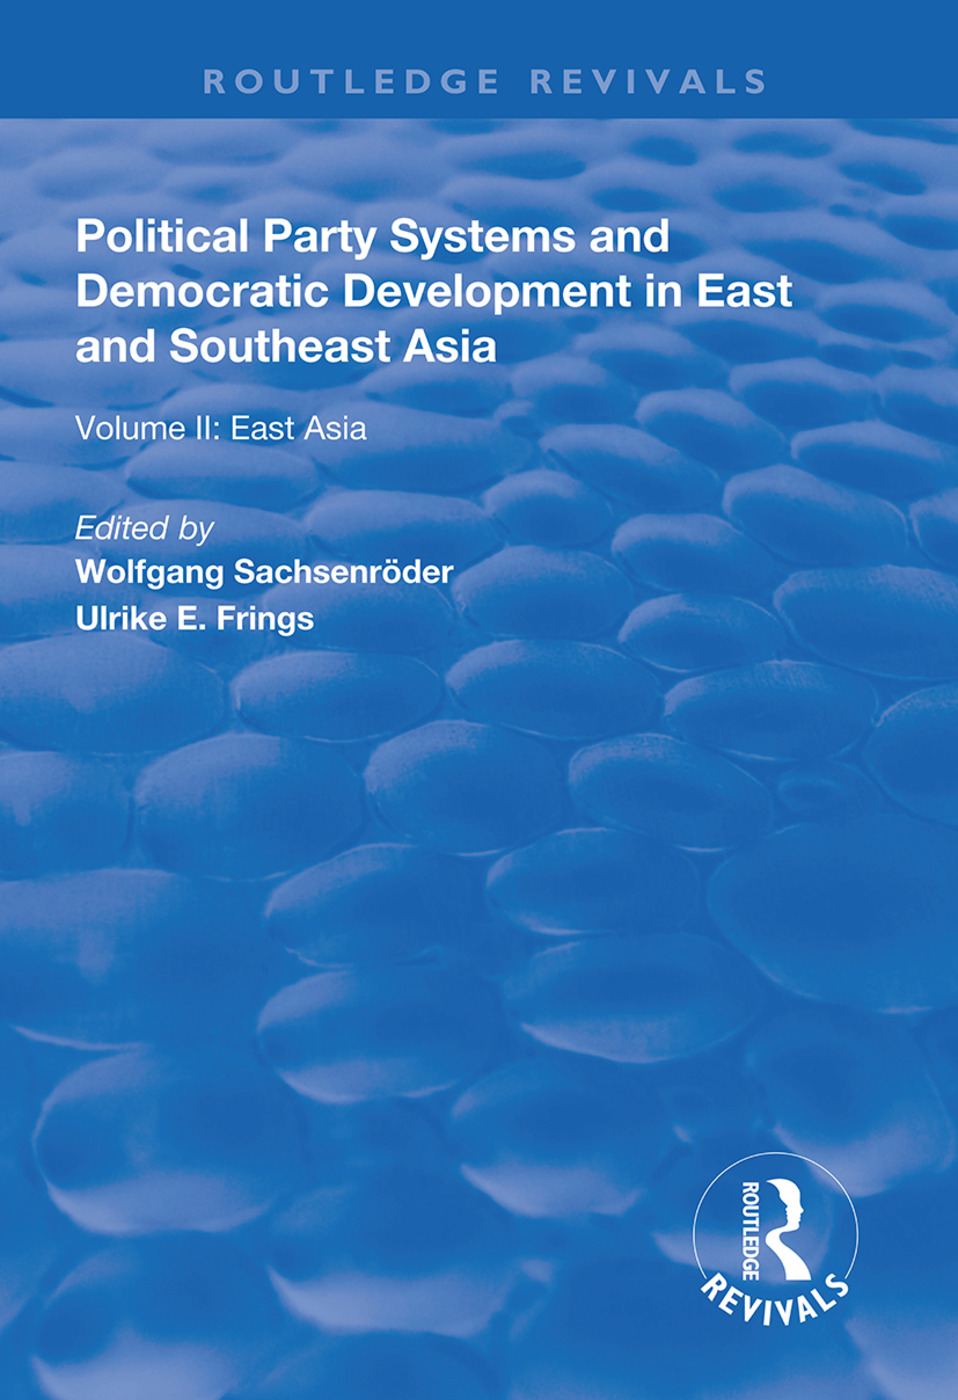 Political Party Systems and Democratic Development in East and Southeast Asia